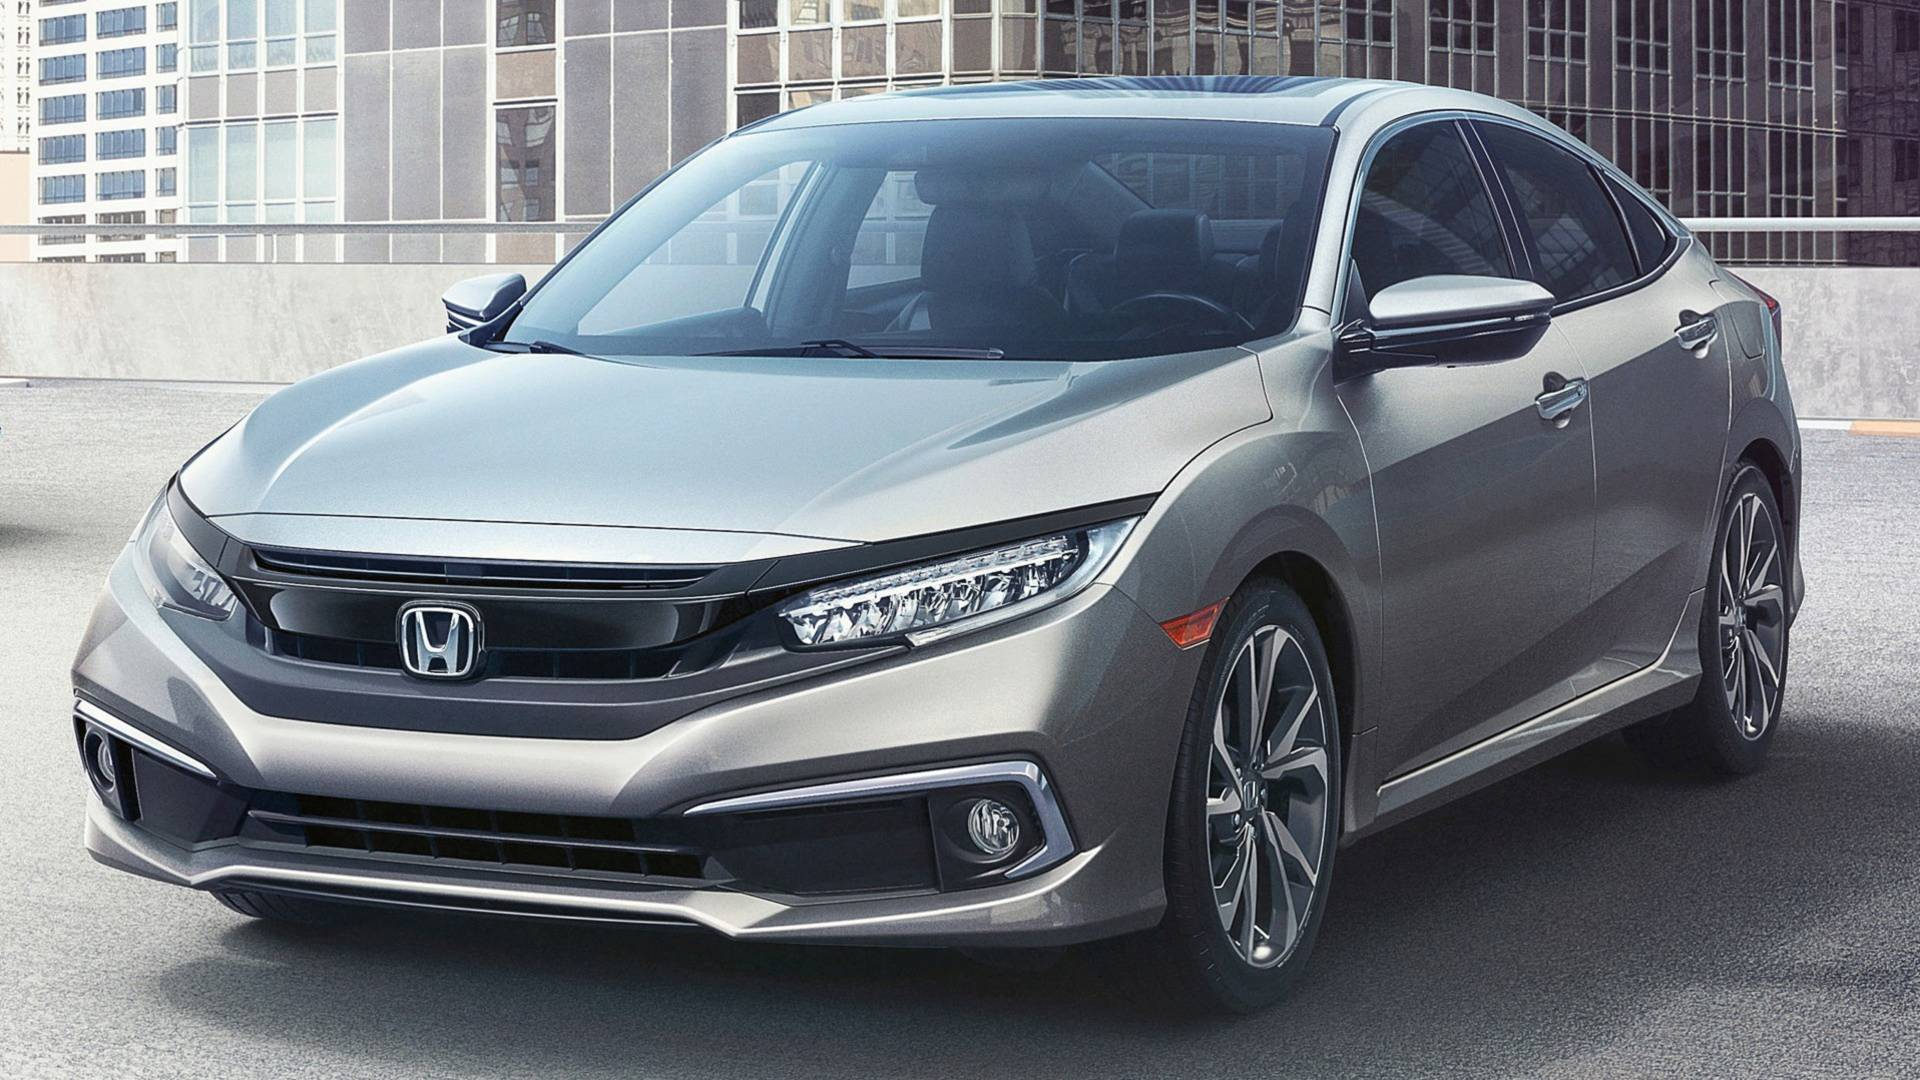 honda-civic-2019-phien-ban-facelift-co-the-ve-dong-nam-a